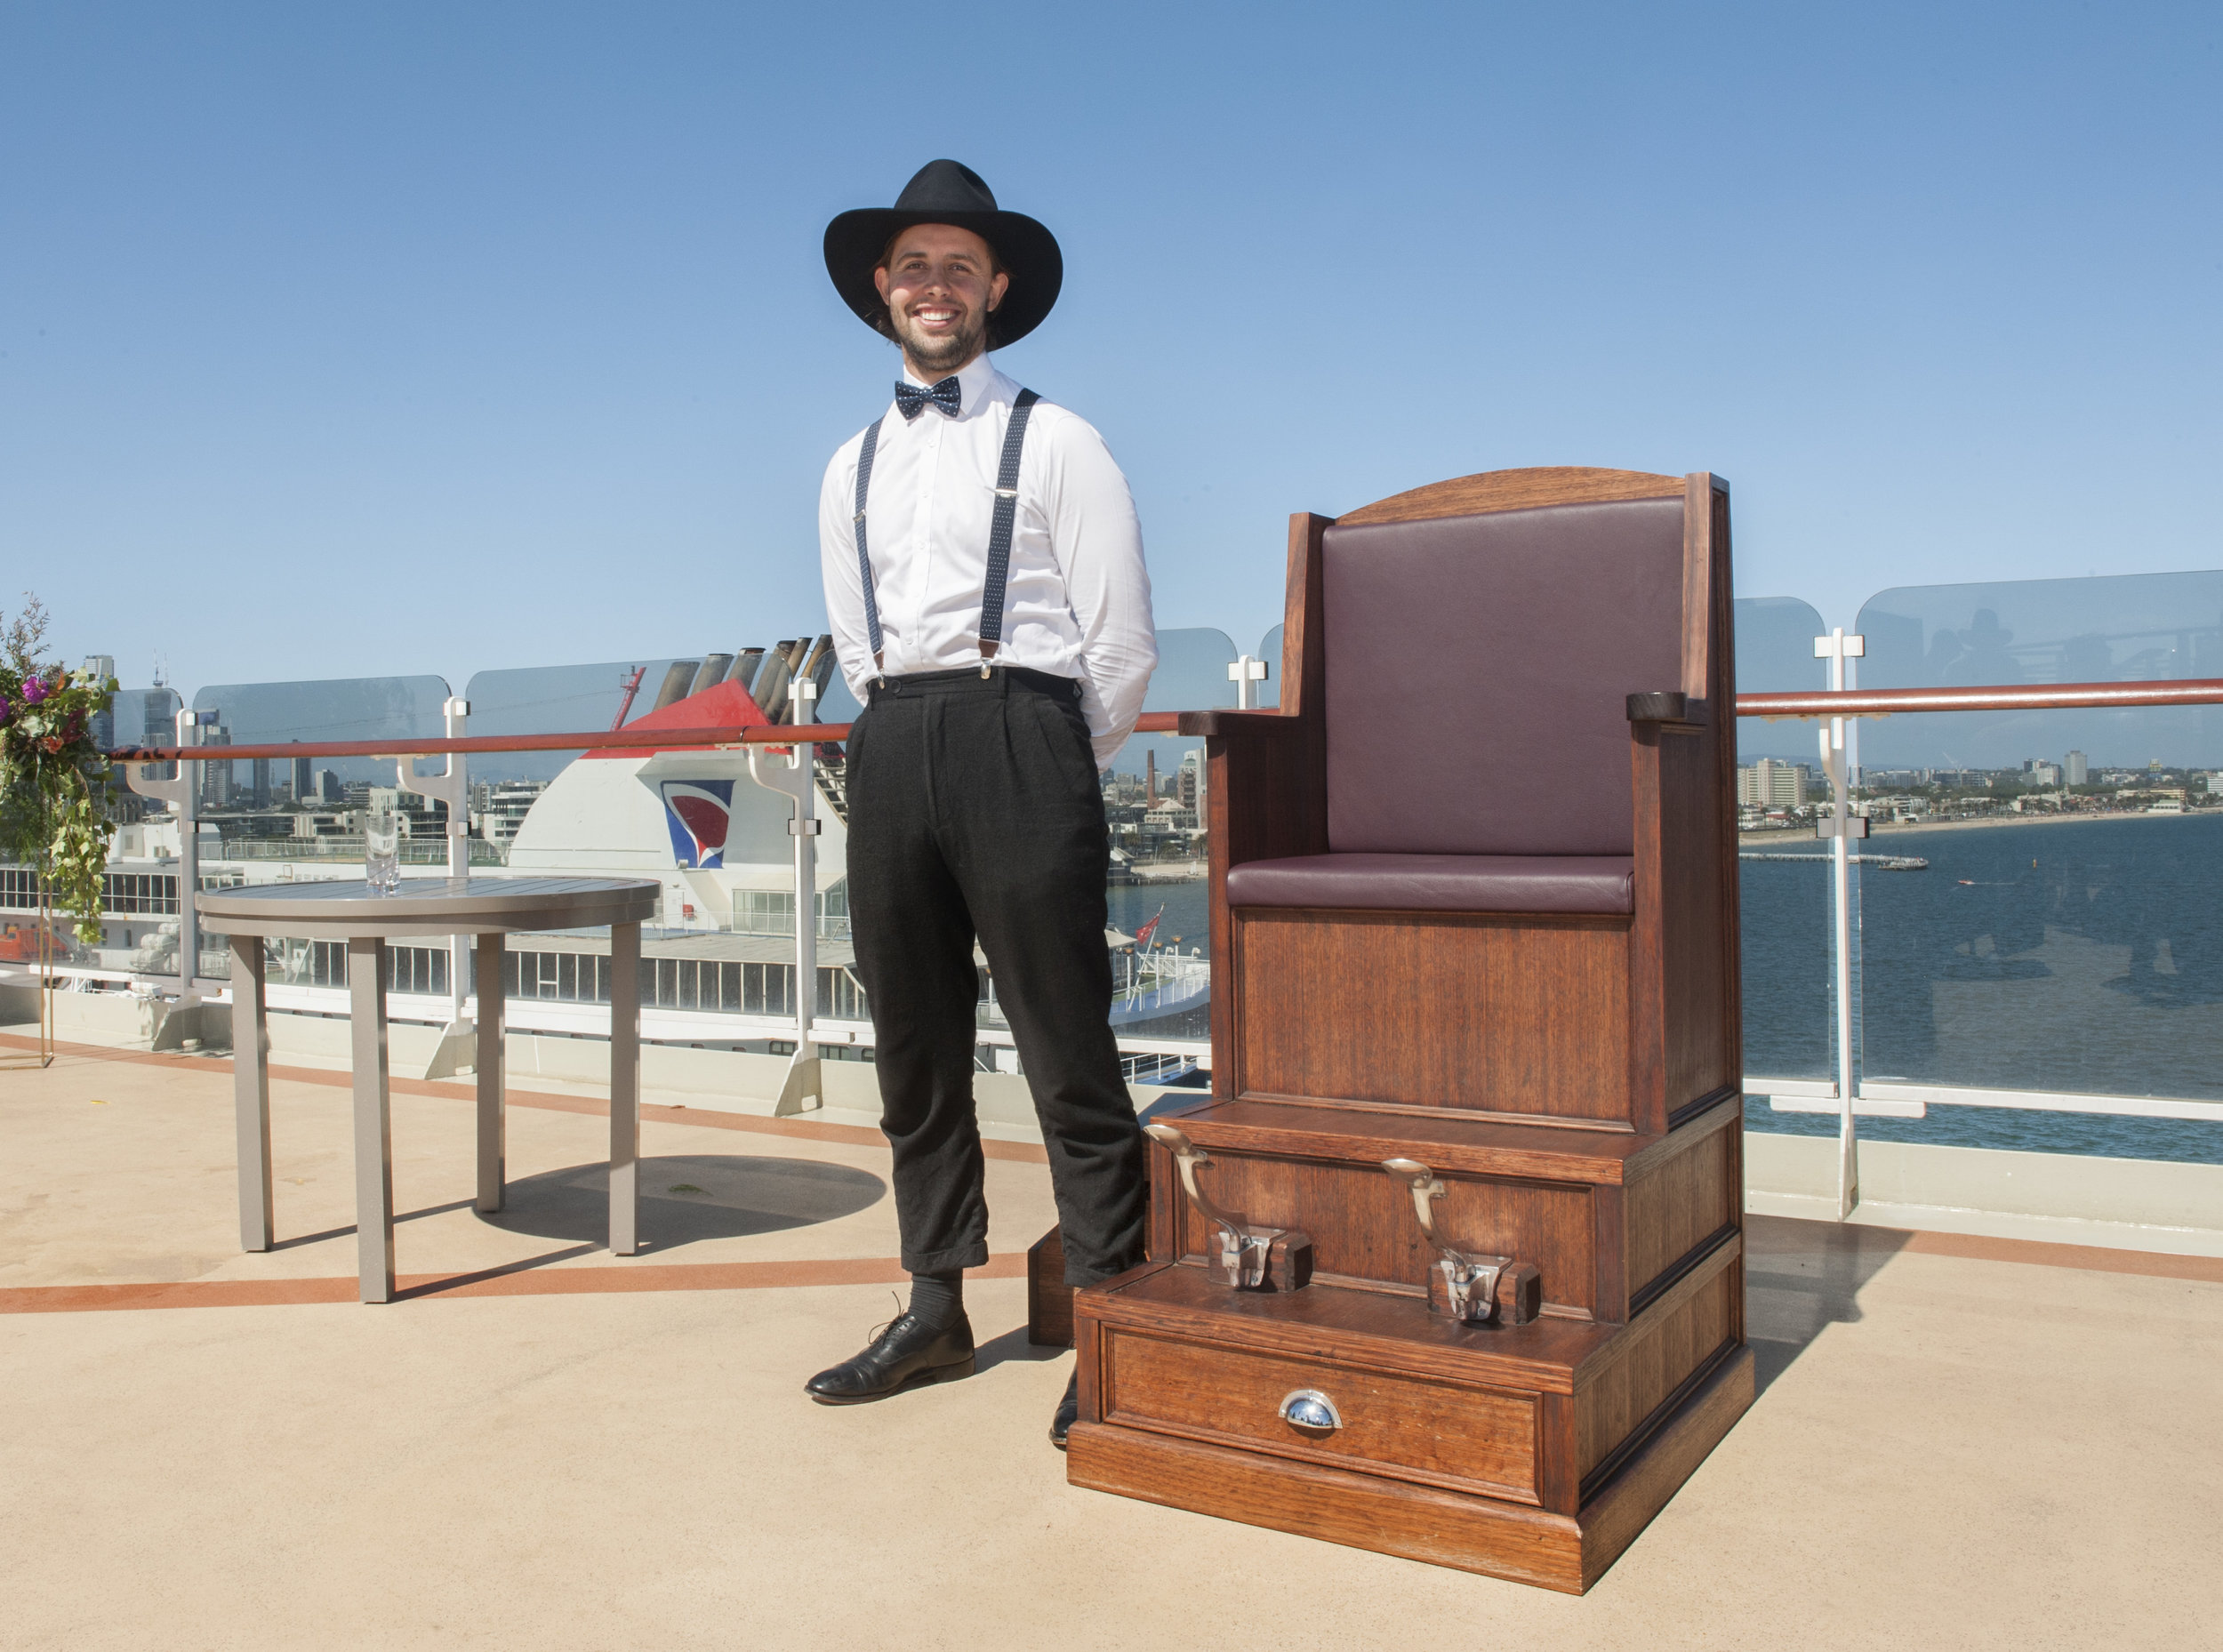 Our expert shoe shiner Billy wears Akubra while working on-board the 'Queen Elizabeth' Ocean Liner